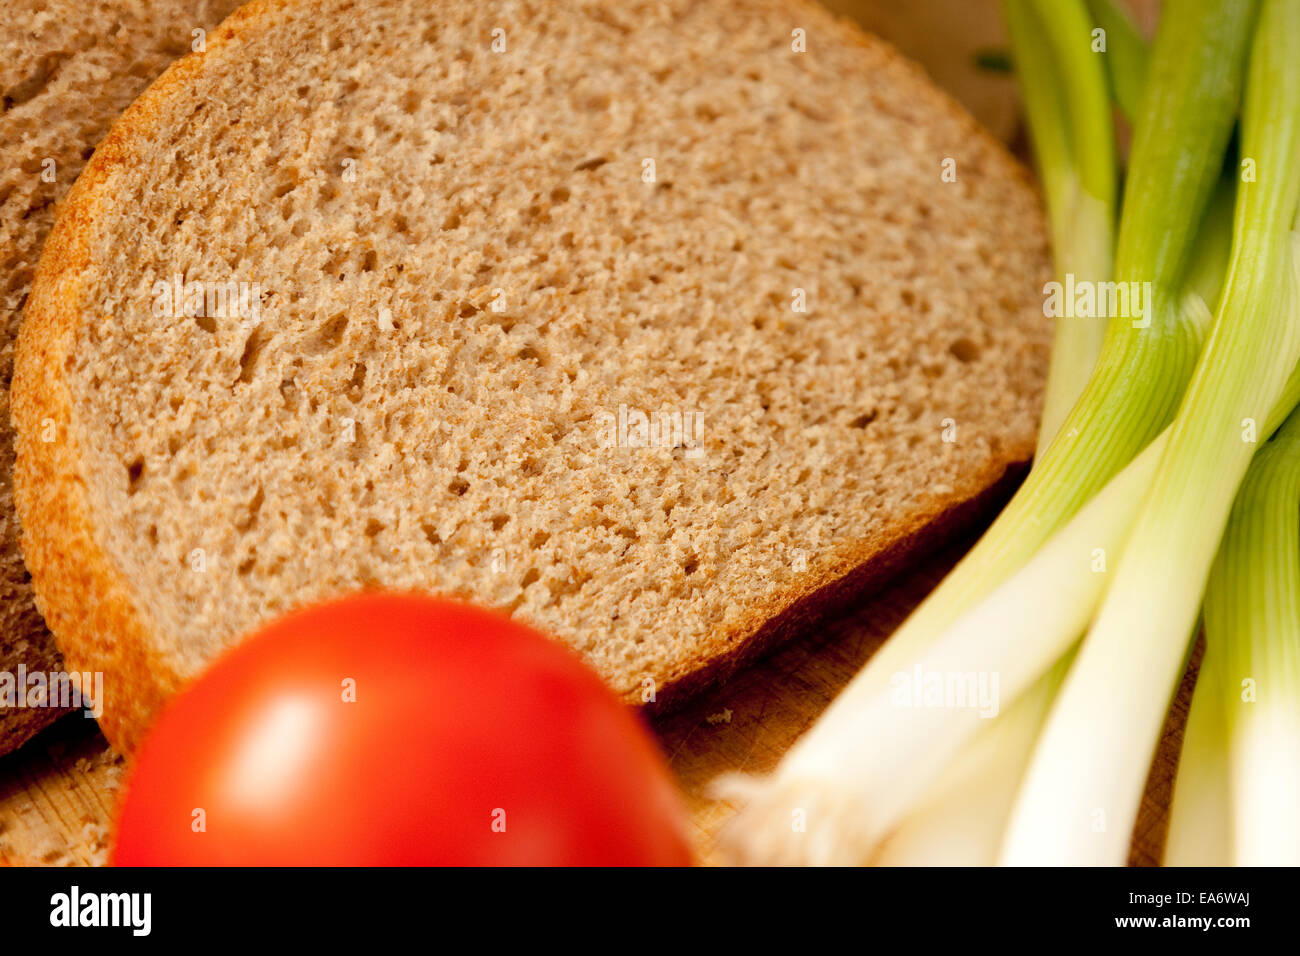 wholemeal (wholewheat) bloomer bread slices presented with spring onions and a tomato - Stock Image